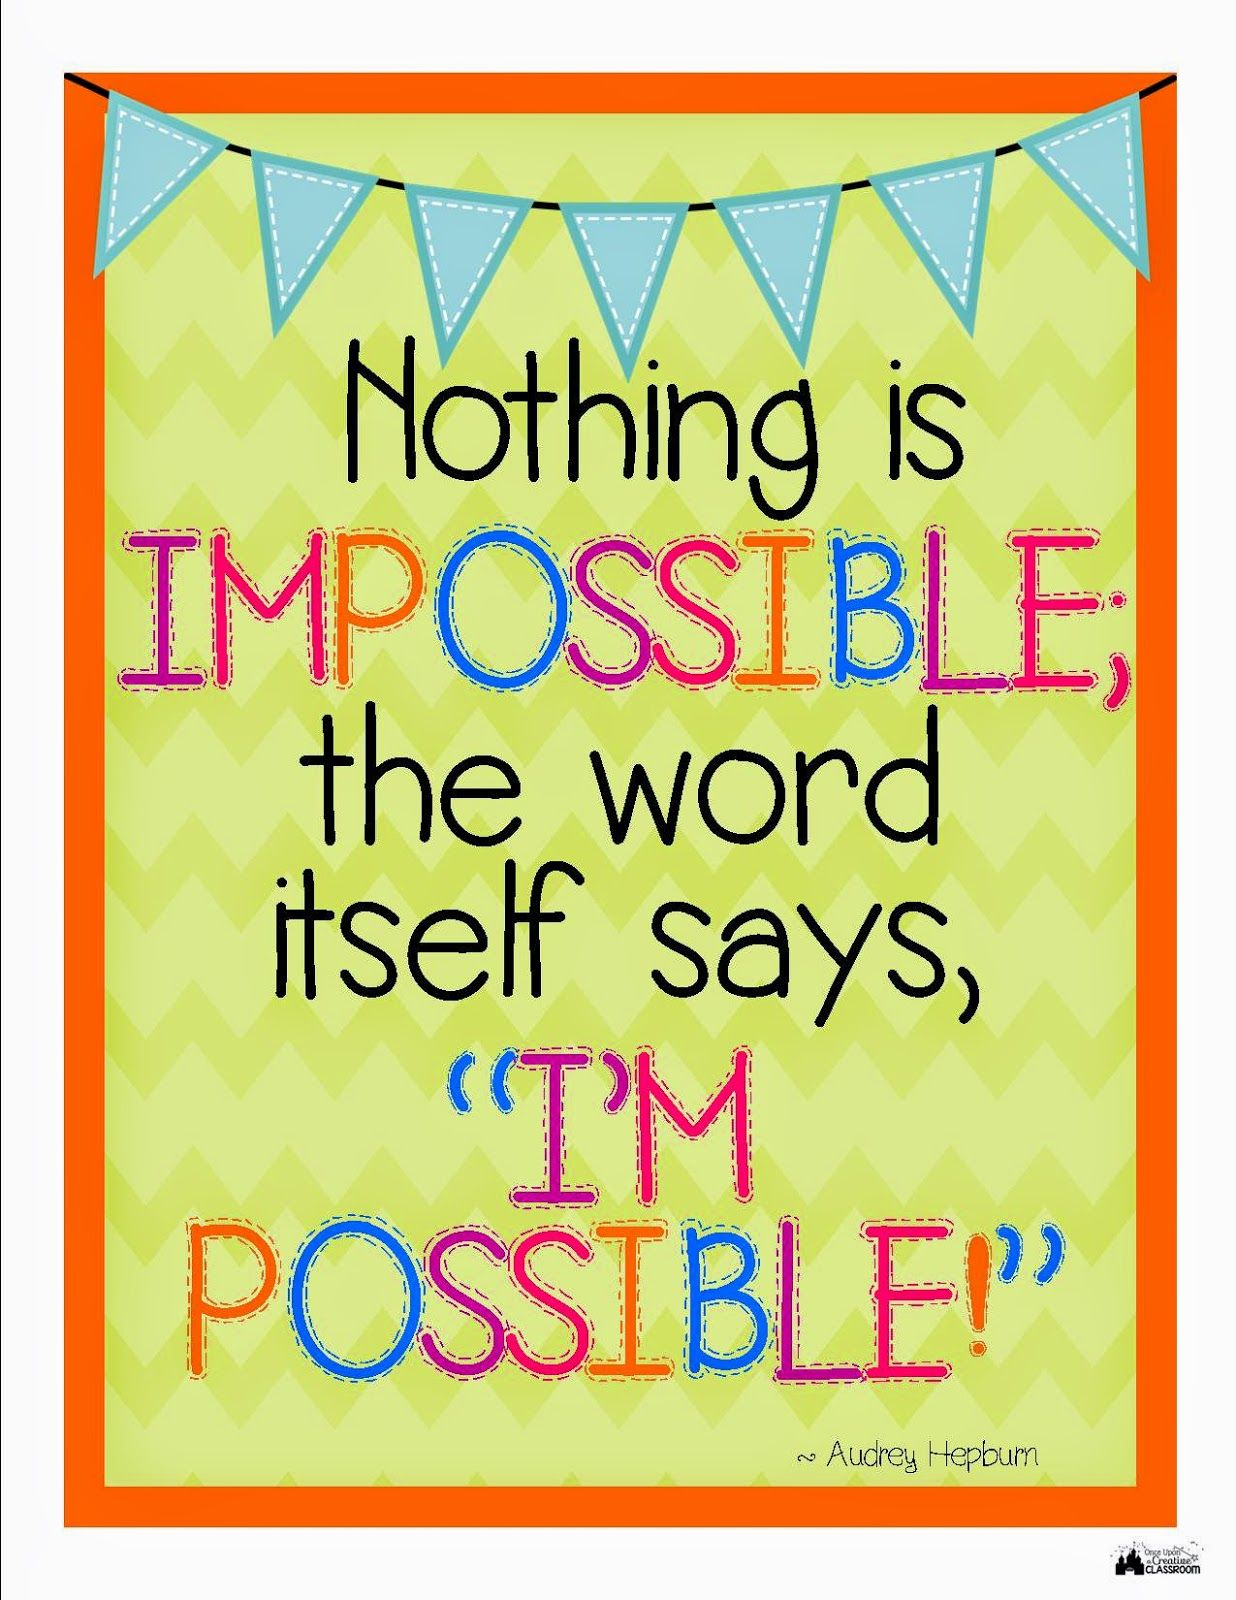 Classroom Quotes Classroom Quotes for Every Day of the Year! | 5th grade classroom  Classroom Quotes